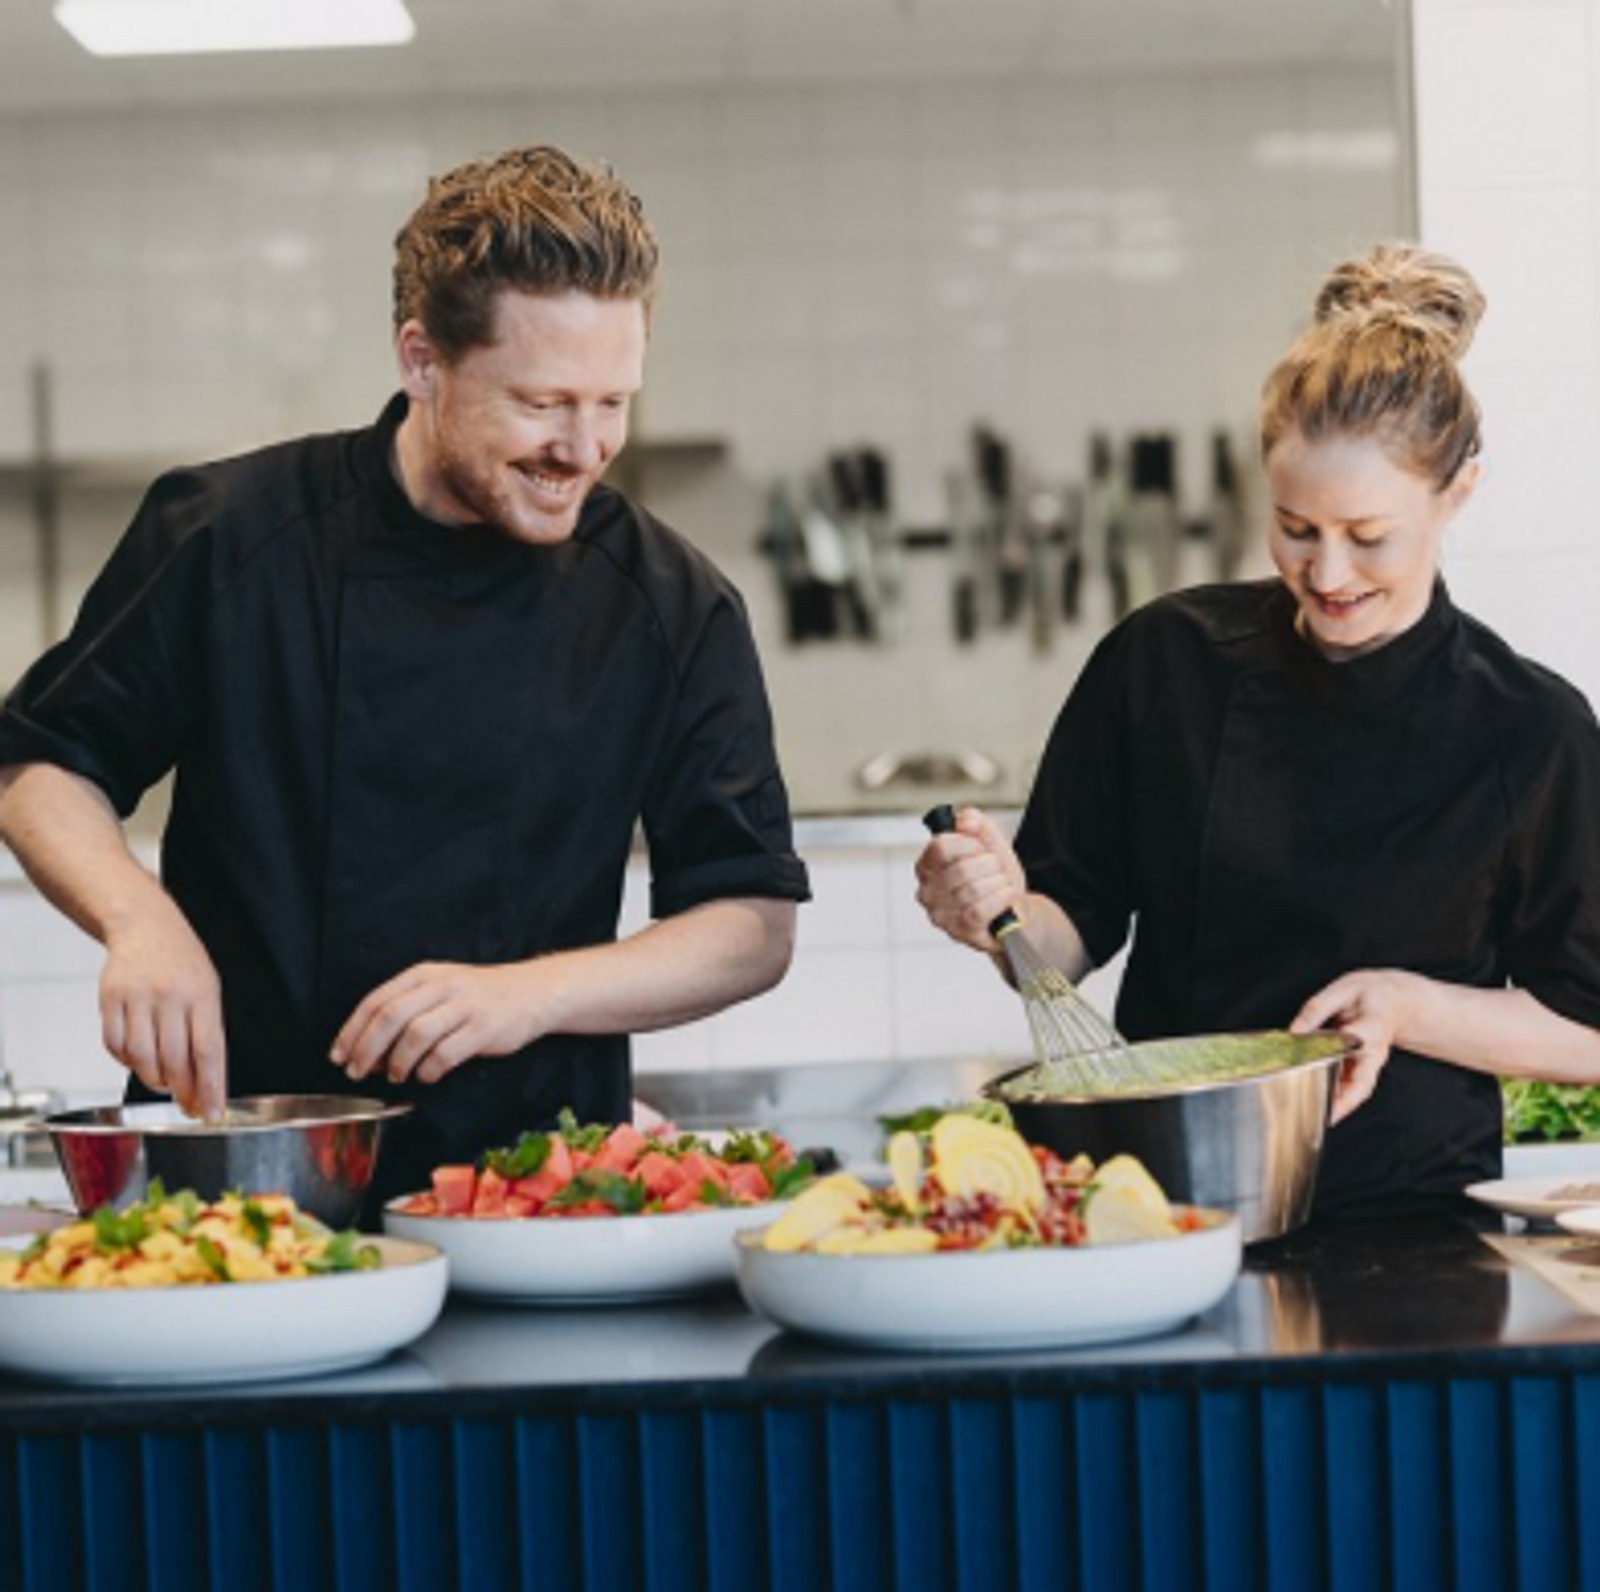 two people in a kitchen cooking together